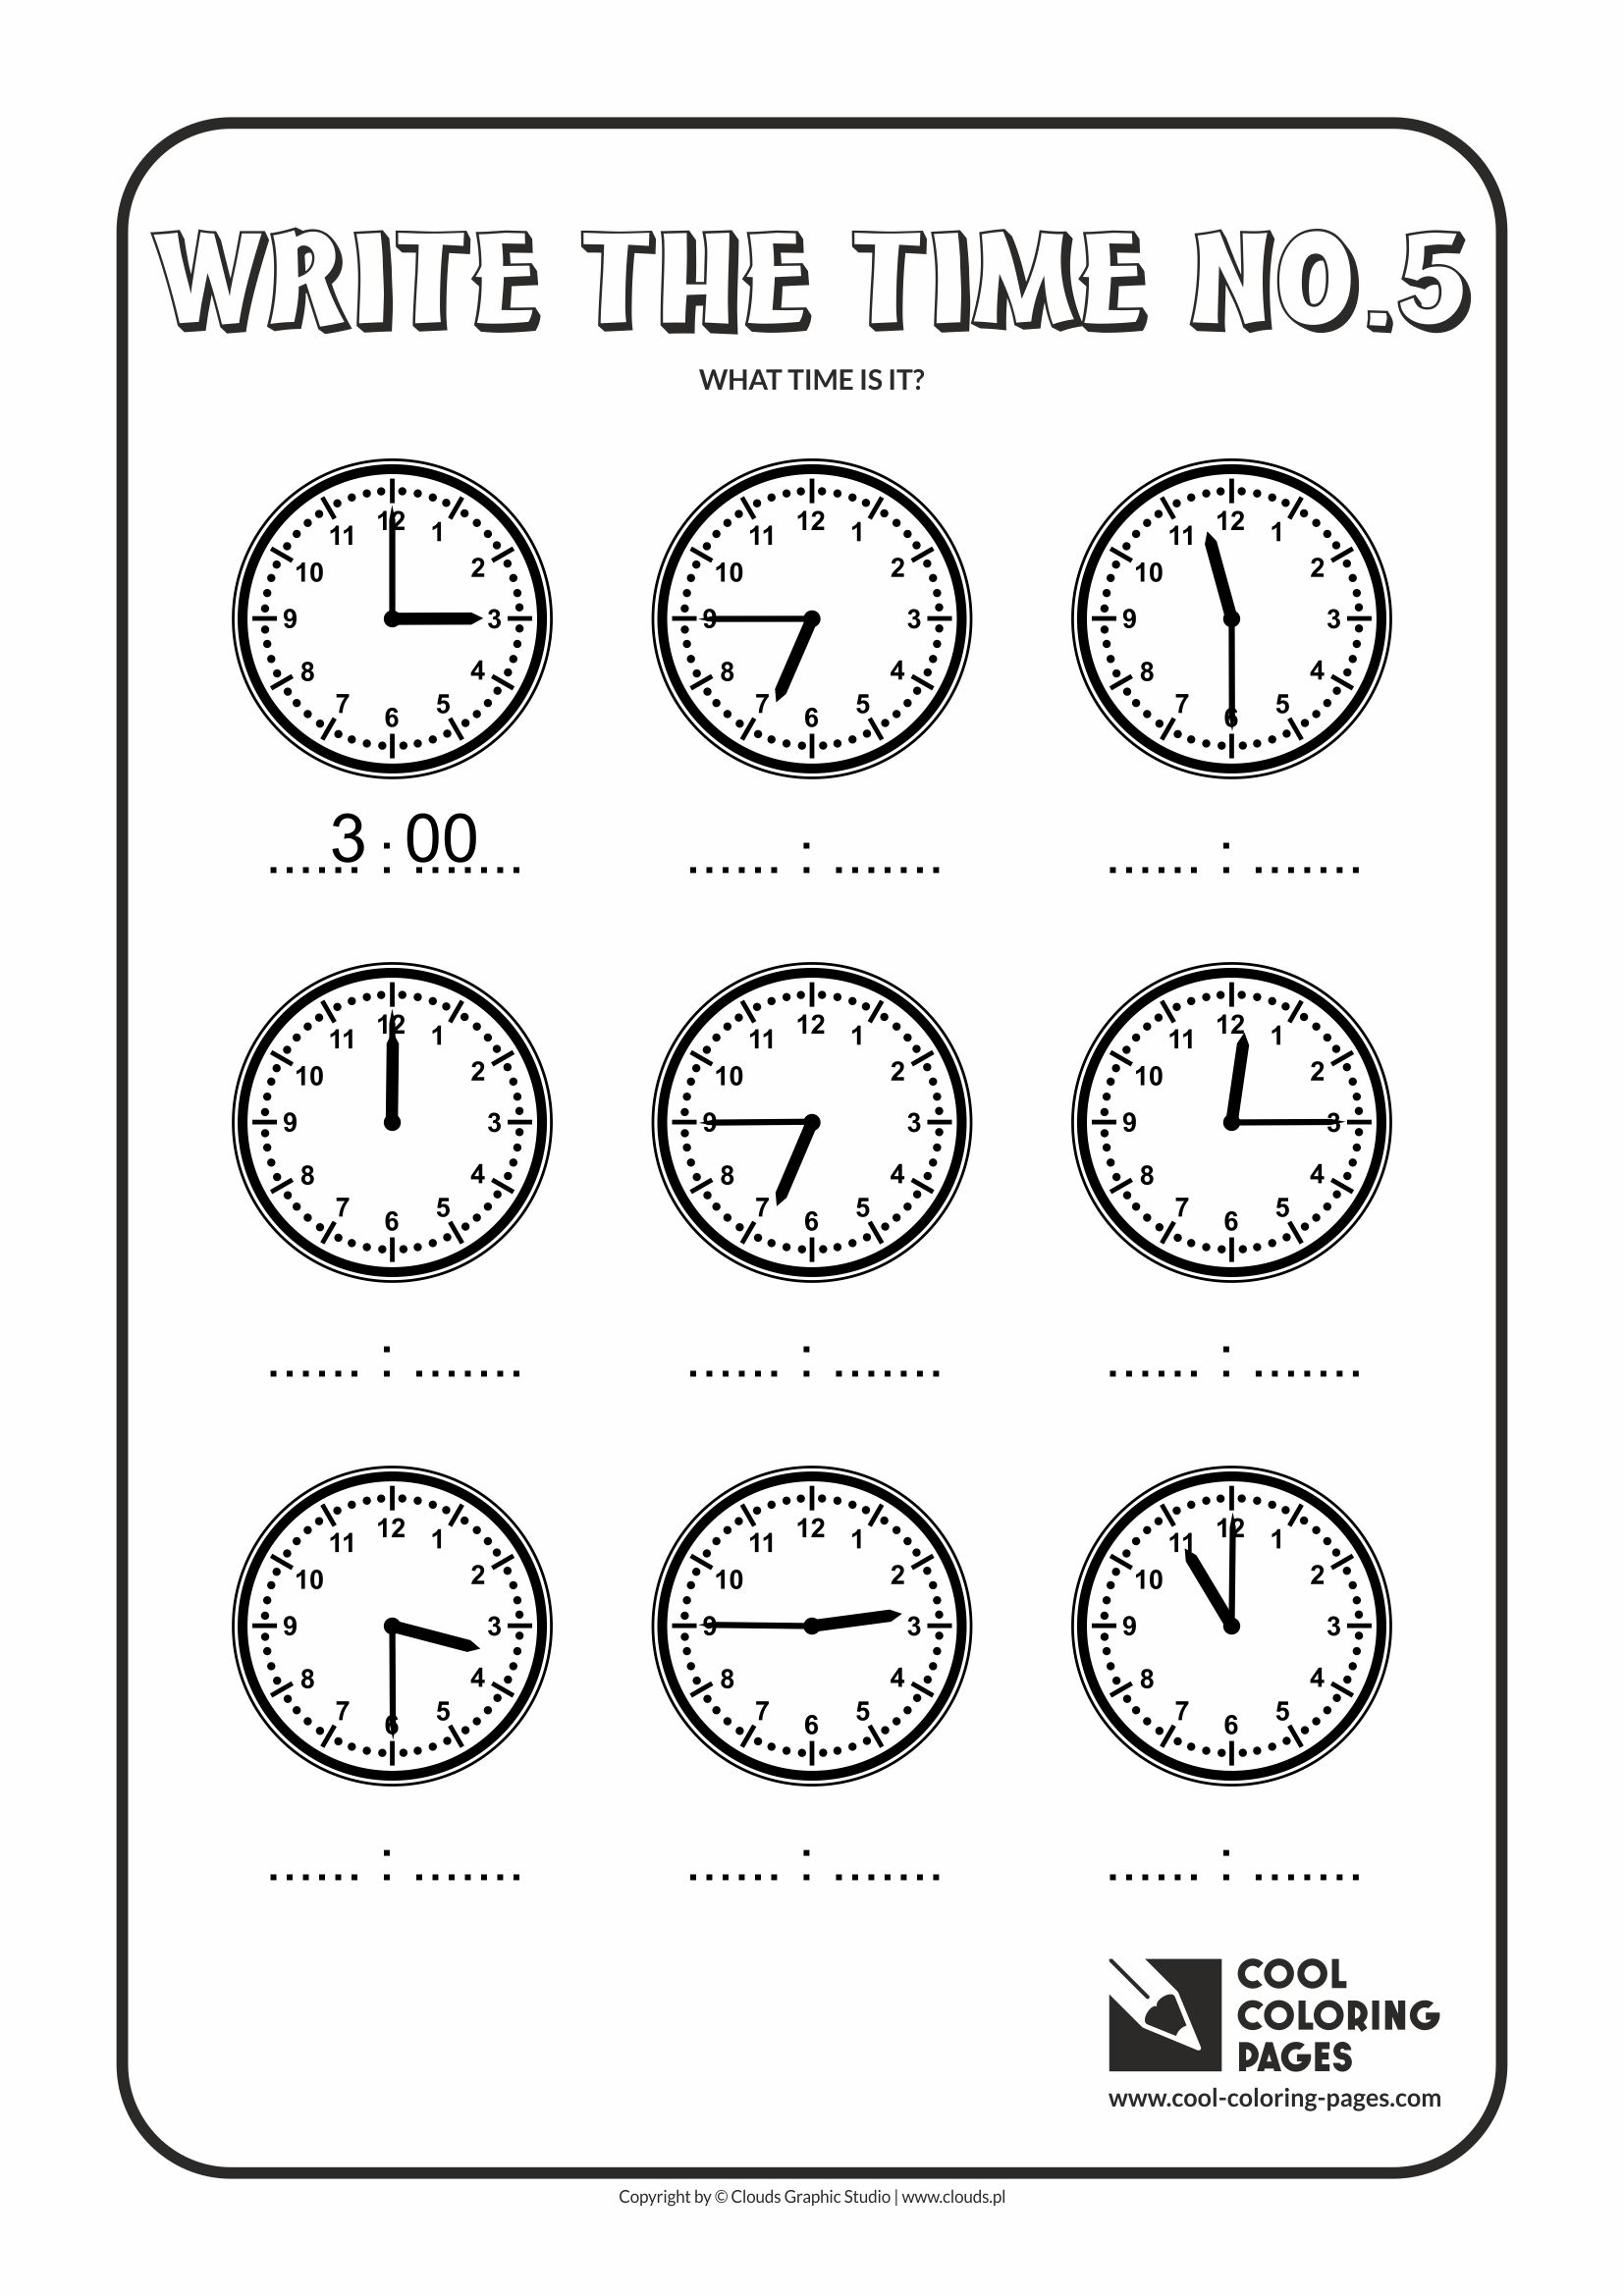 Cool Coloring Pages - Time / Write the time no.5